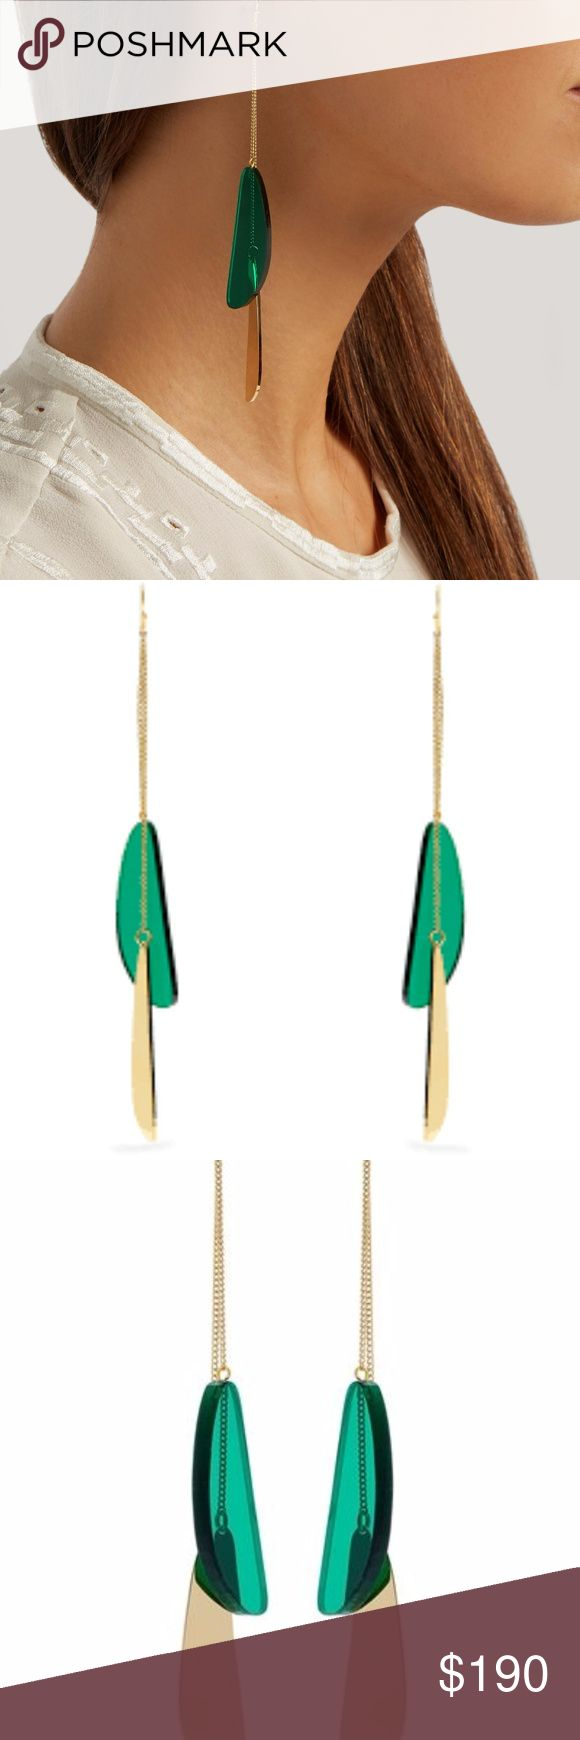 ISABEL MARANT Other Potatoes Chain Earrings These Isabel Marant Other Potatoes earrings will effortlessly elevate day and night looks. They're crafted in France with a green acrylic droplet that swings from fine gold-tone brass chains. Wear them with pared-back pieces to achieve nonchalant Parisian elegance. Product number: COLOUR: Green COMPOSITION: Acrylic and brass. COUNTRY OF ORIGIN: France Gold-tone and royal-blue acrylic abstract-shape droplet Gold-tone brass chain Hook fastening…